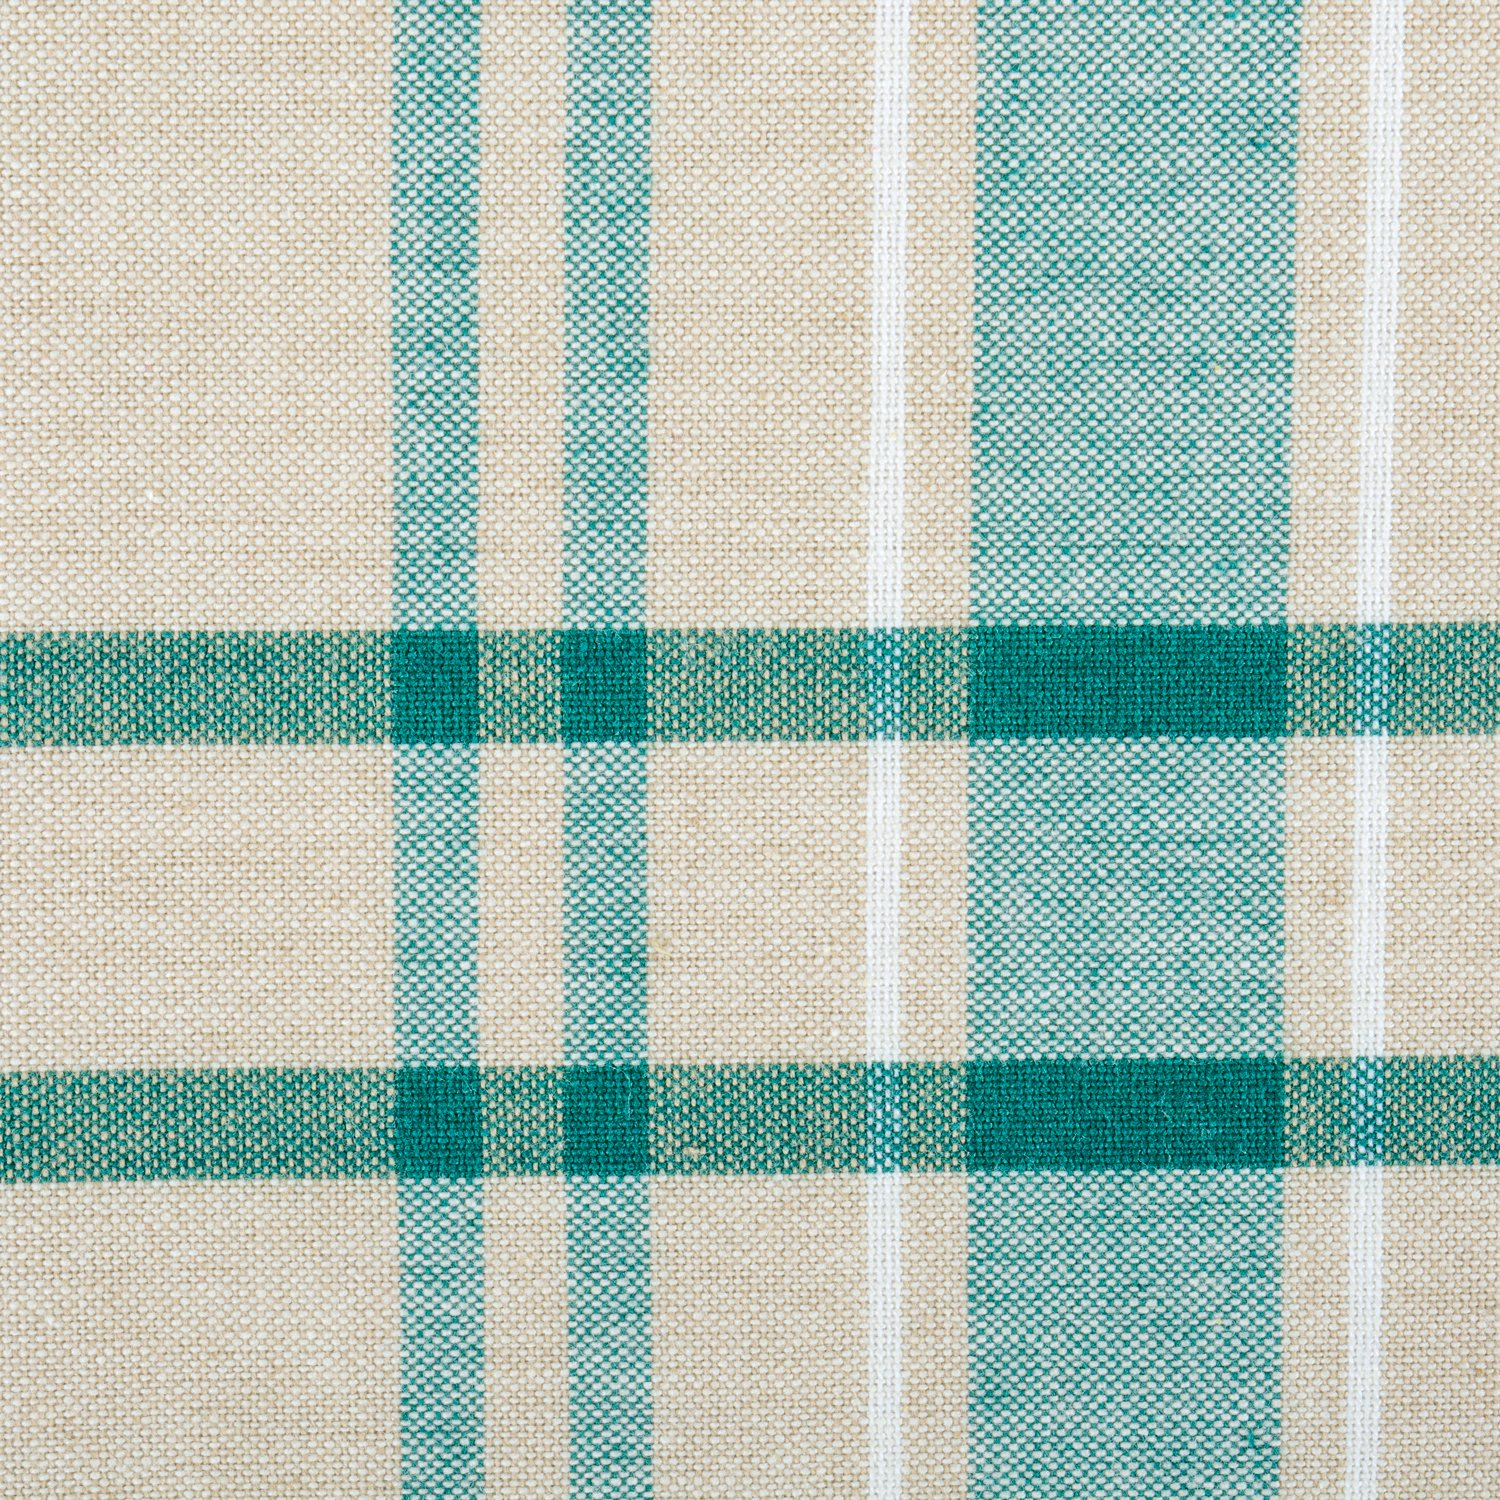 DII 100% Cotton, Machine Washable, Everyday French Stripe Kitchen Tablecloth for Dinner Parties, Summer & Outdoor Picnics - 60x84 Seats 6 to 8 People, Teal by DII (Image #2)